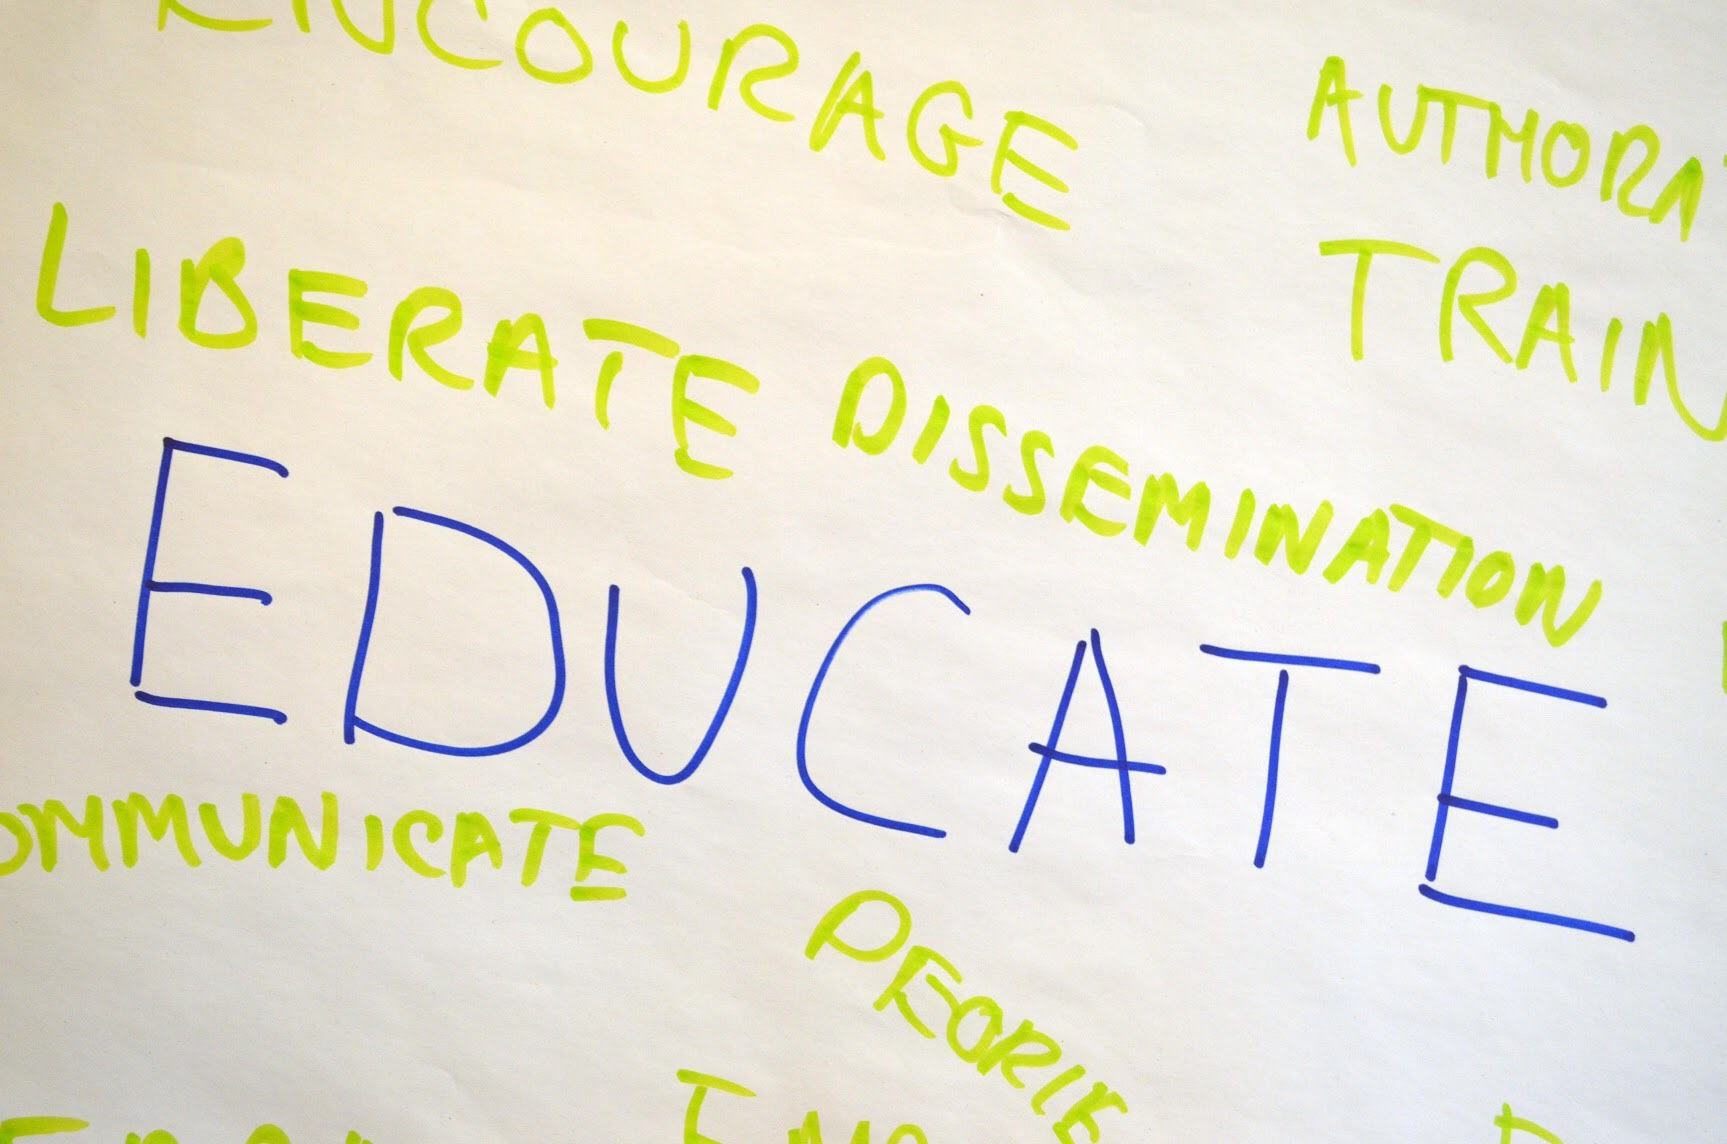 Leaders reflect upon what it means to educate others.